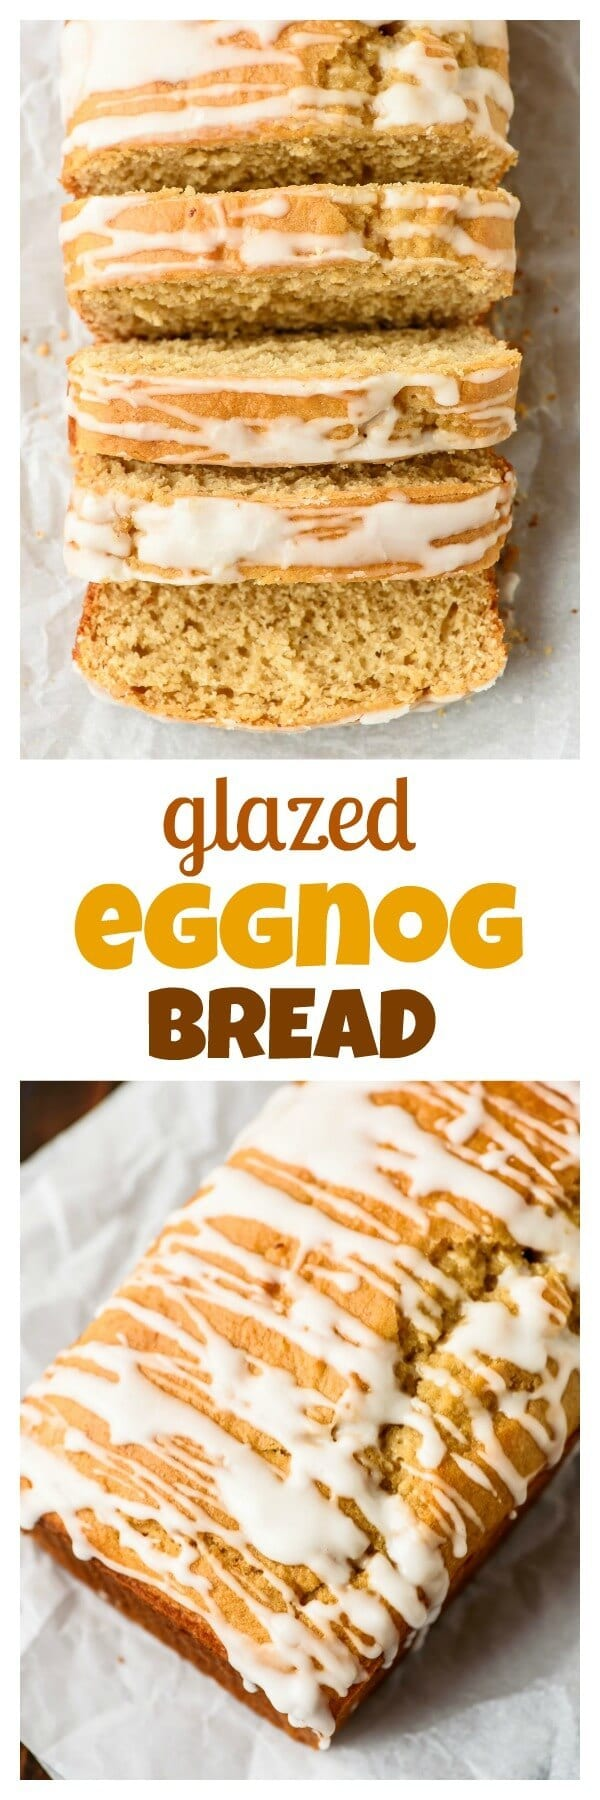 Glazed Eggnog Bread recipe - Moist, buttery, and packed with holiday flavors like vanilla and nutmeg. Easy to make, and the rum glaze puts it over the top!